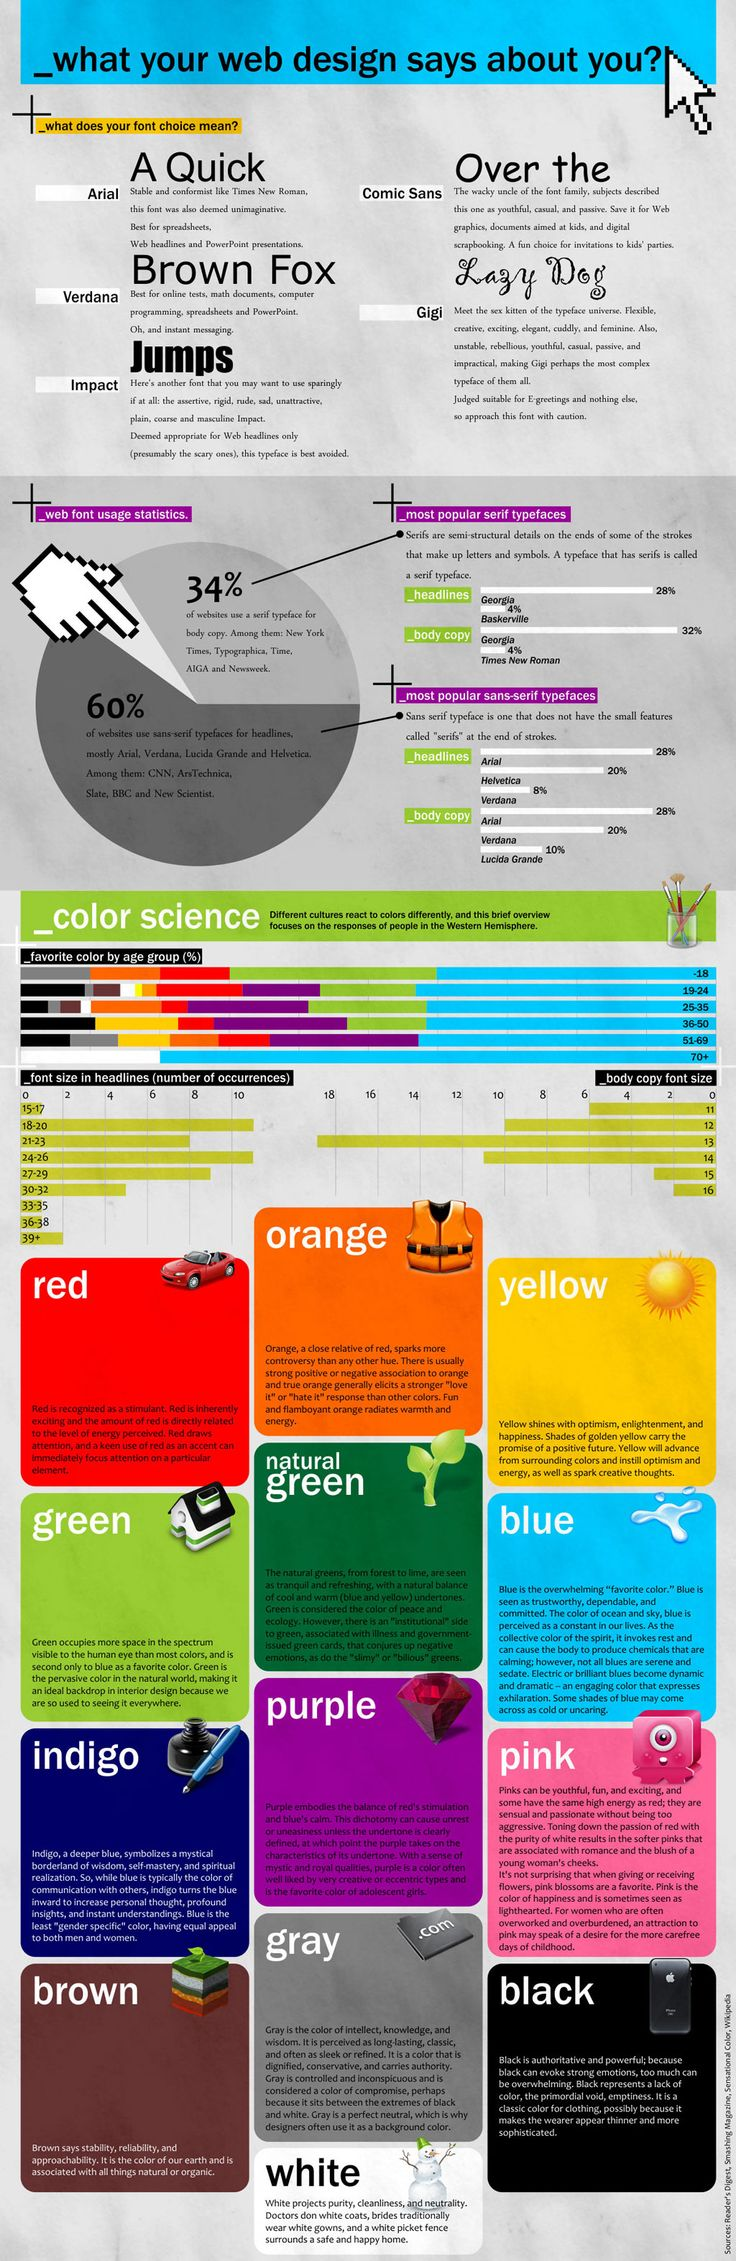 What your web design says about you: Websitedesign, Webdesign, Web Design, Social Media, Web Colors, Graphics Design, Website Design, Fonts, Infographic